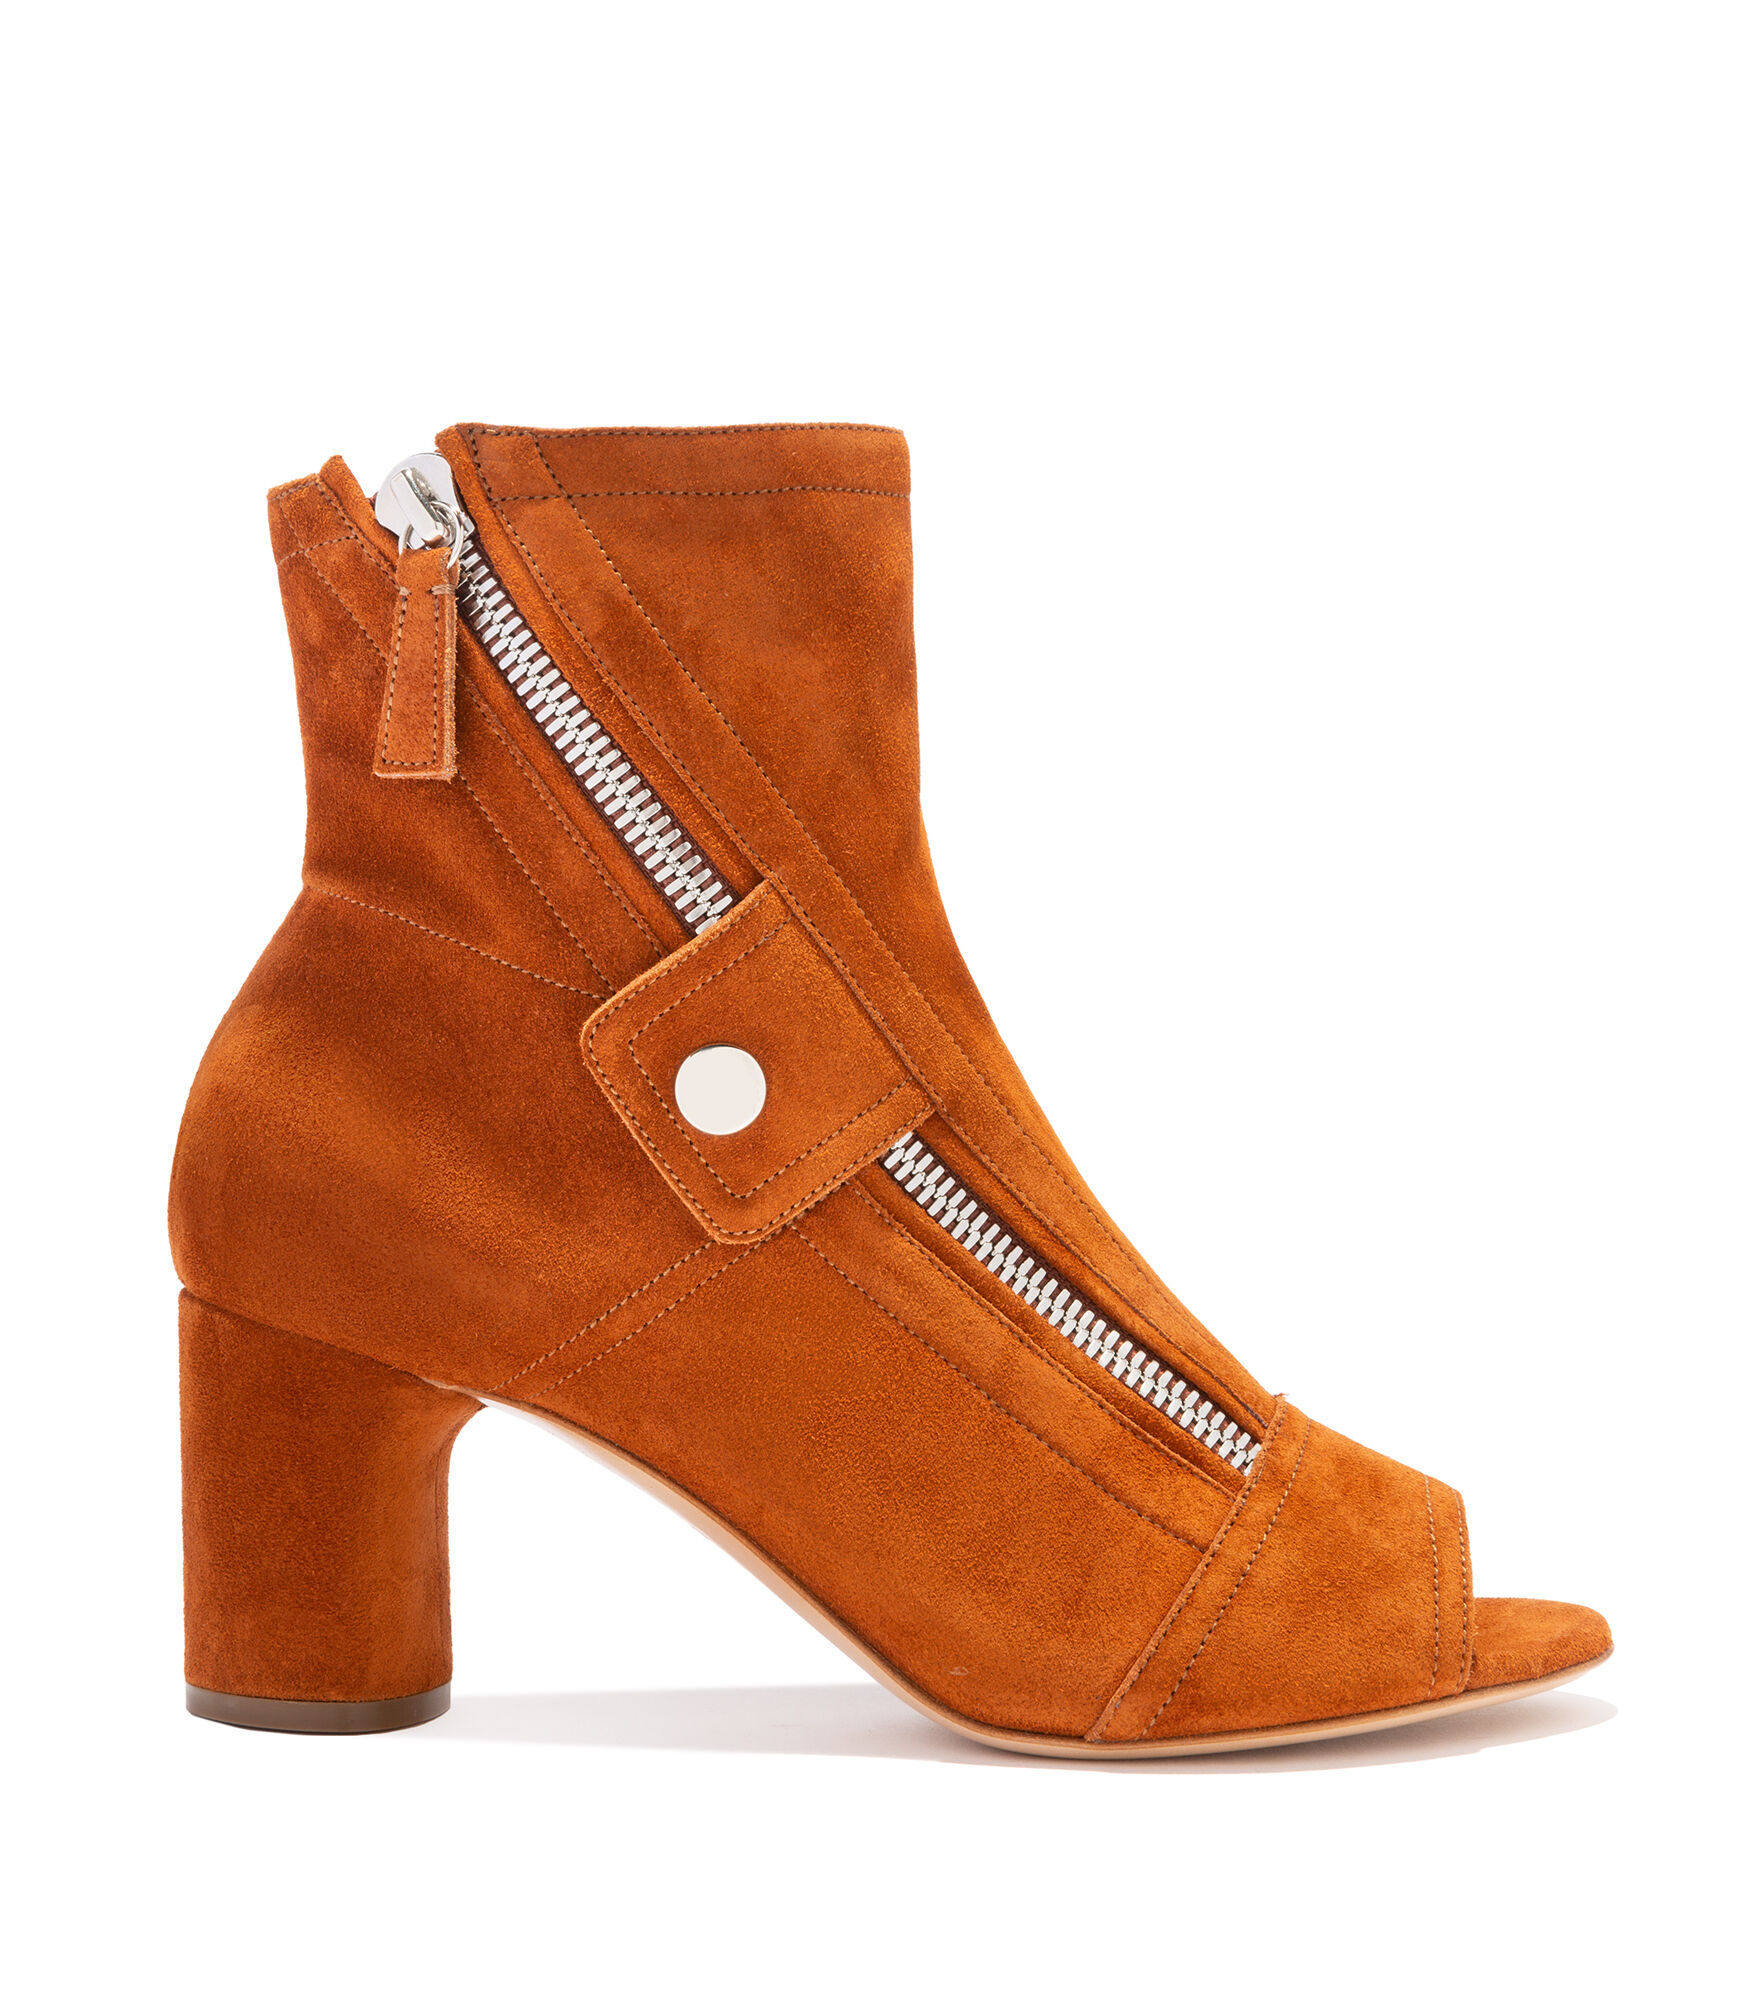 Casadei Ankle Boots - Selena Russet Suede